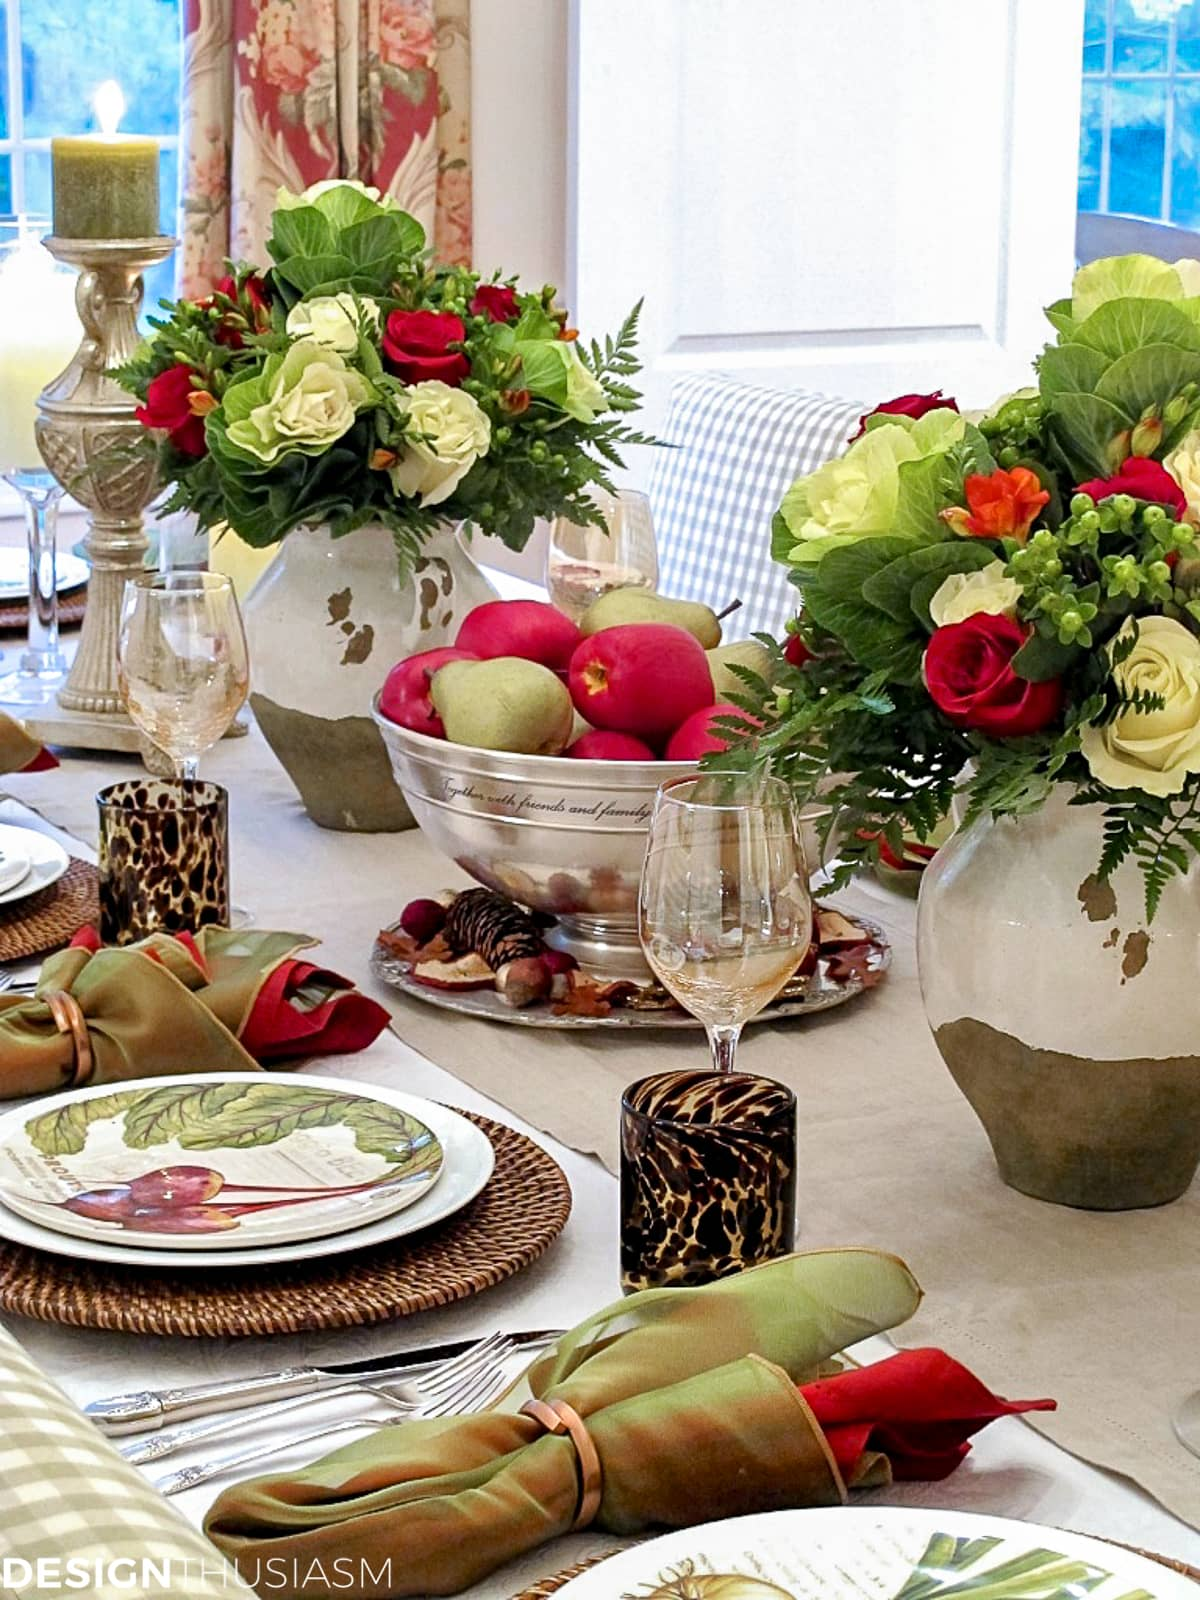 fall table setting with apples and pears